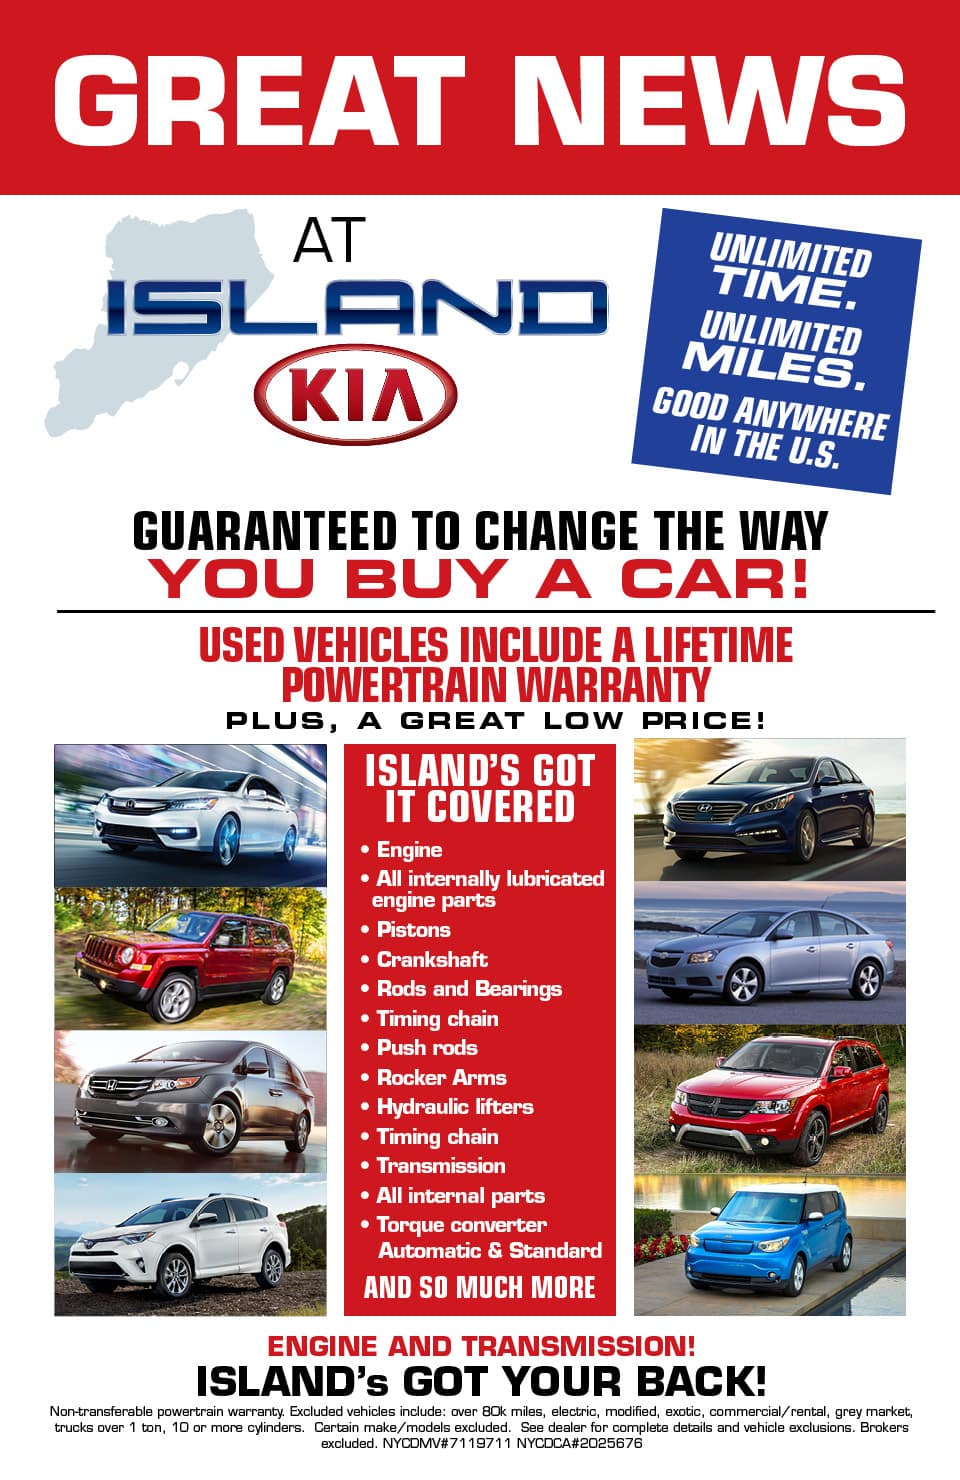 kia dealership near woodbridge